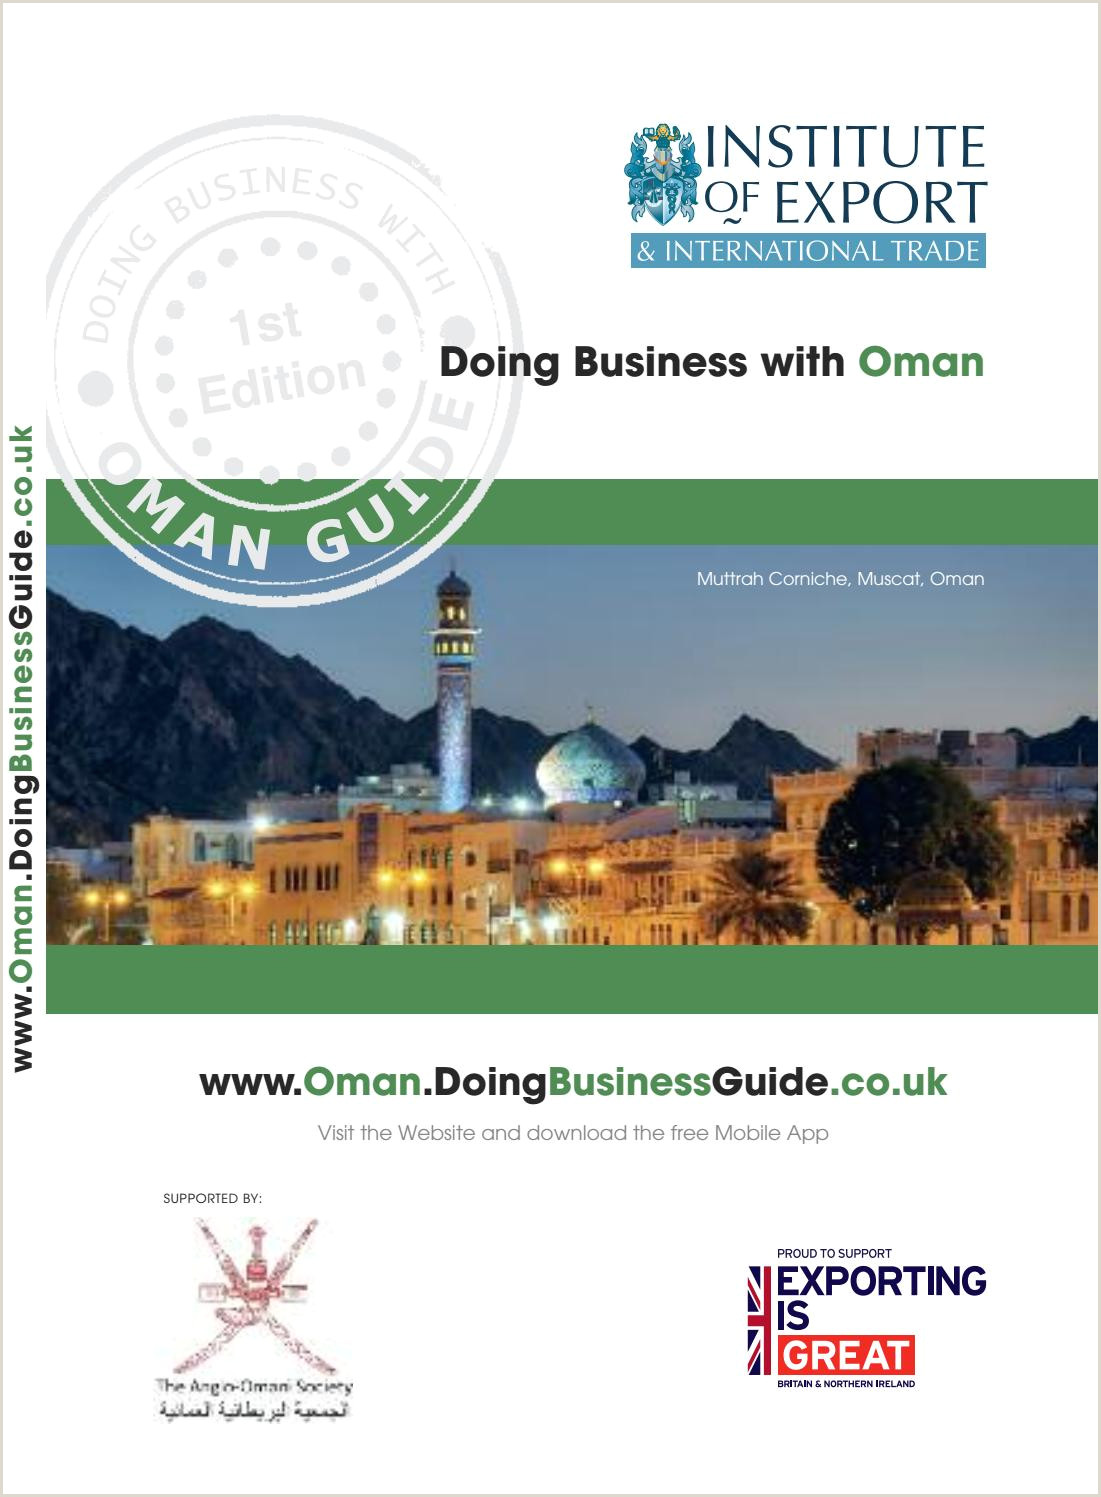 Attractive Business Cards Doing Business With Oman Guide By Doing Business Guides Issuu